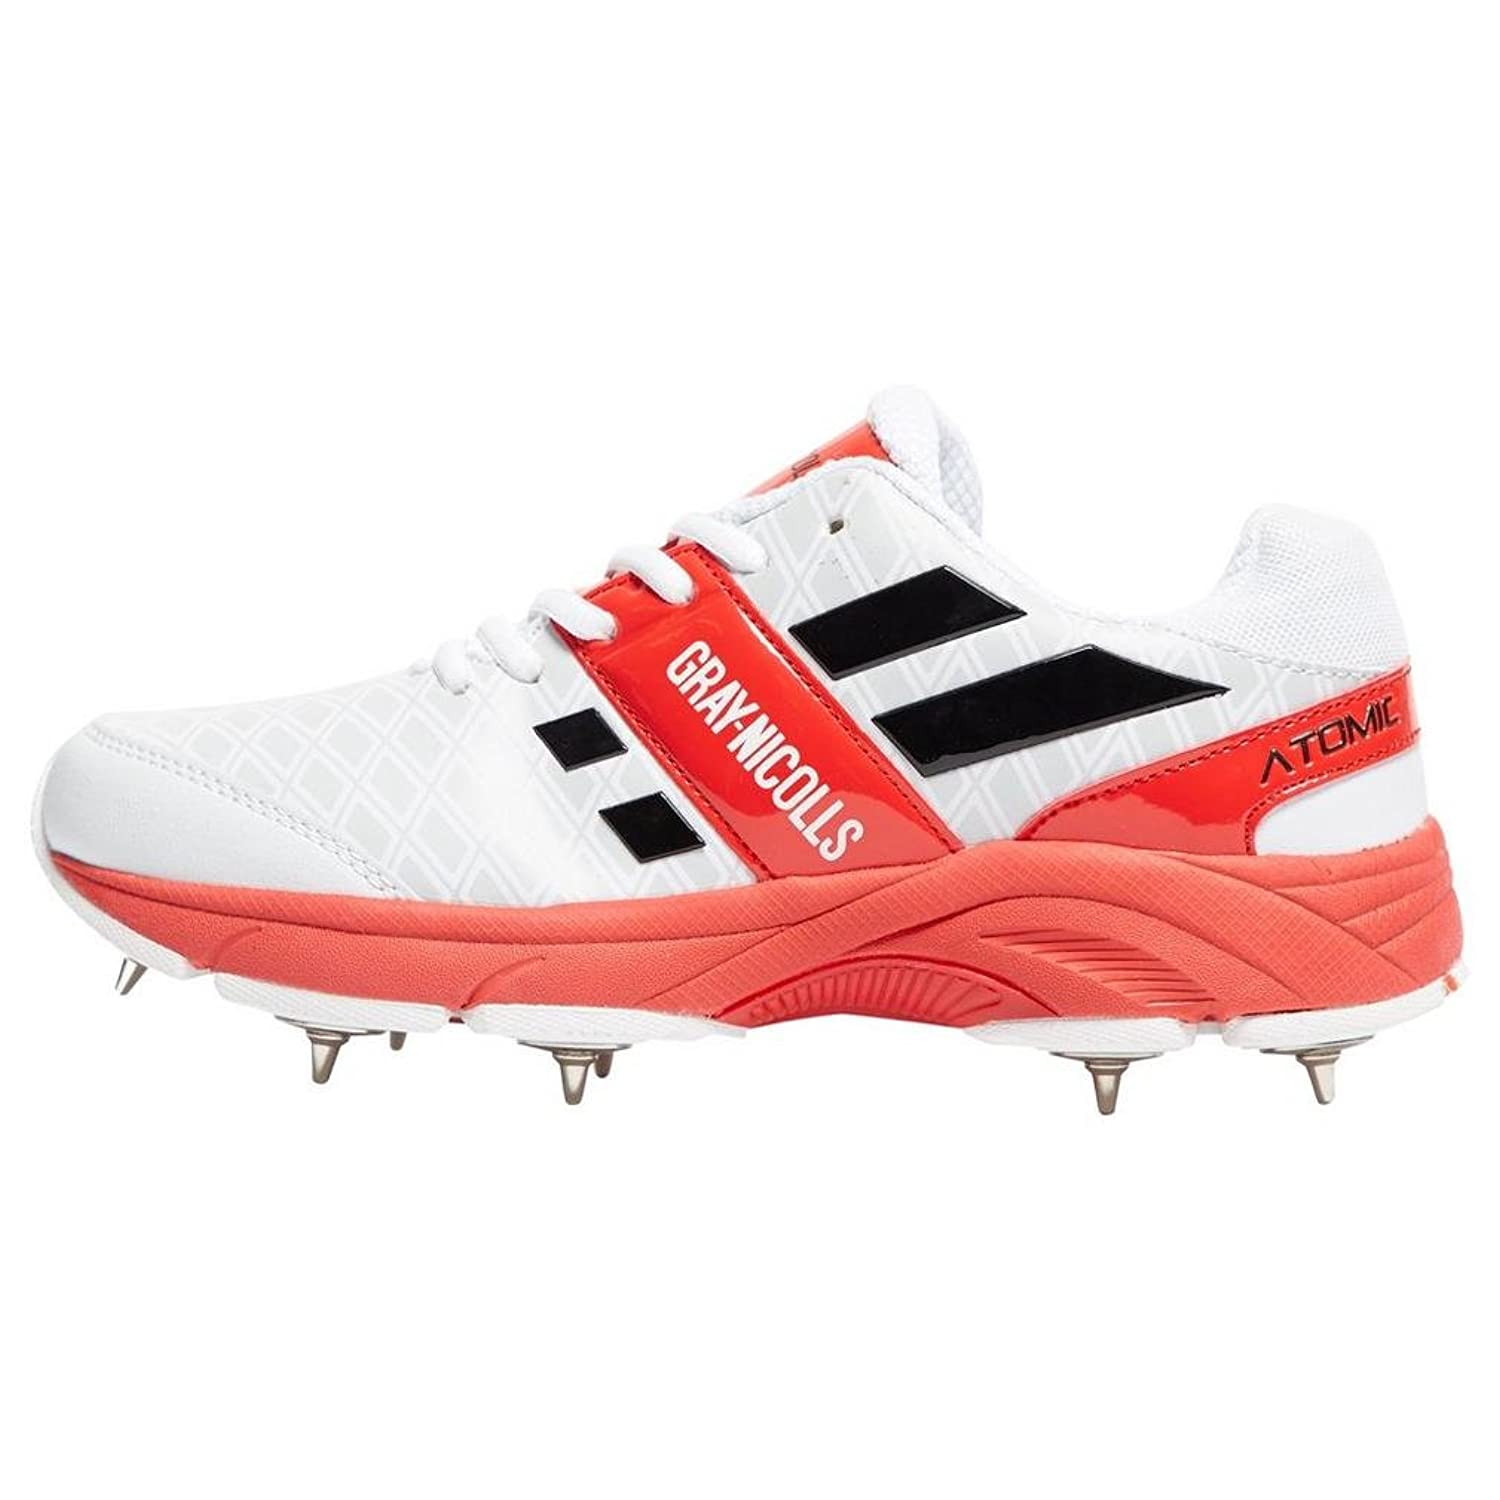 (5 UK) - Grey-Nicolls Atomic Cricket Shoes Spike